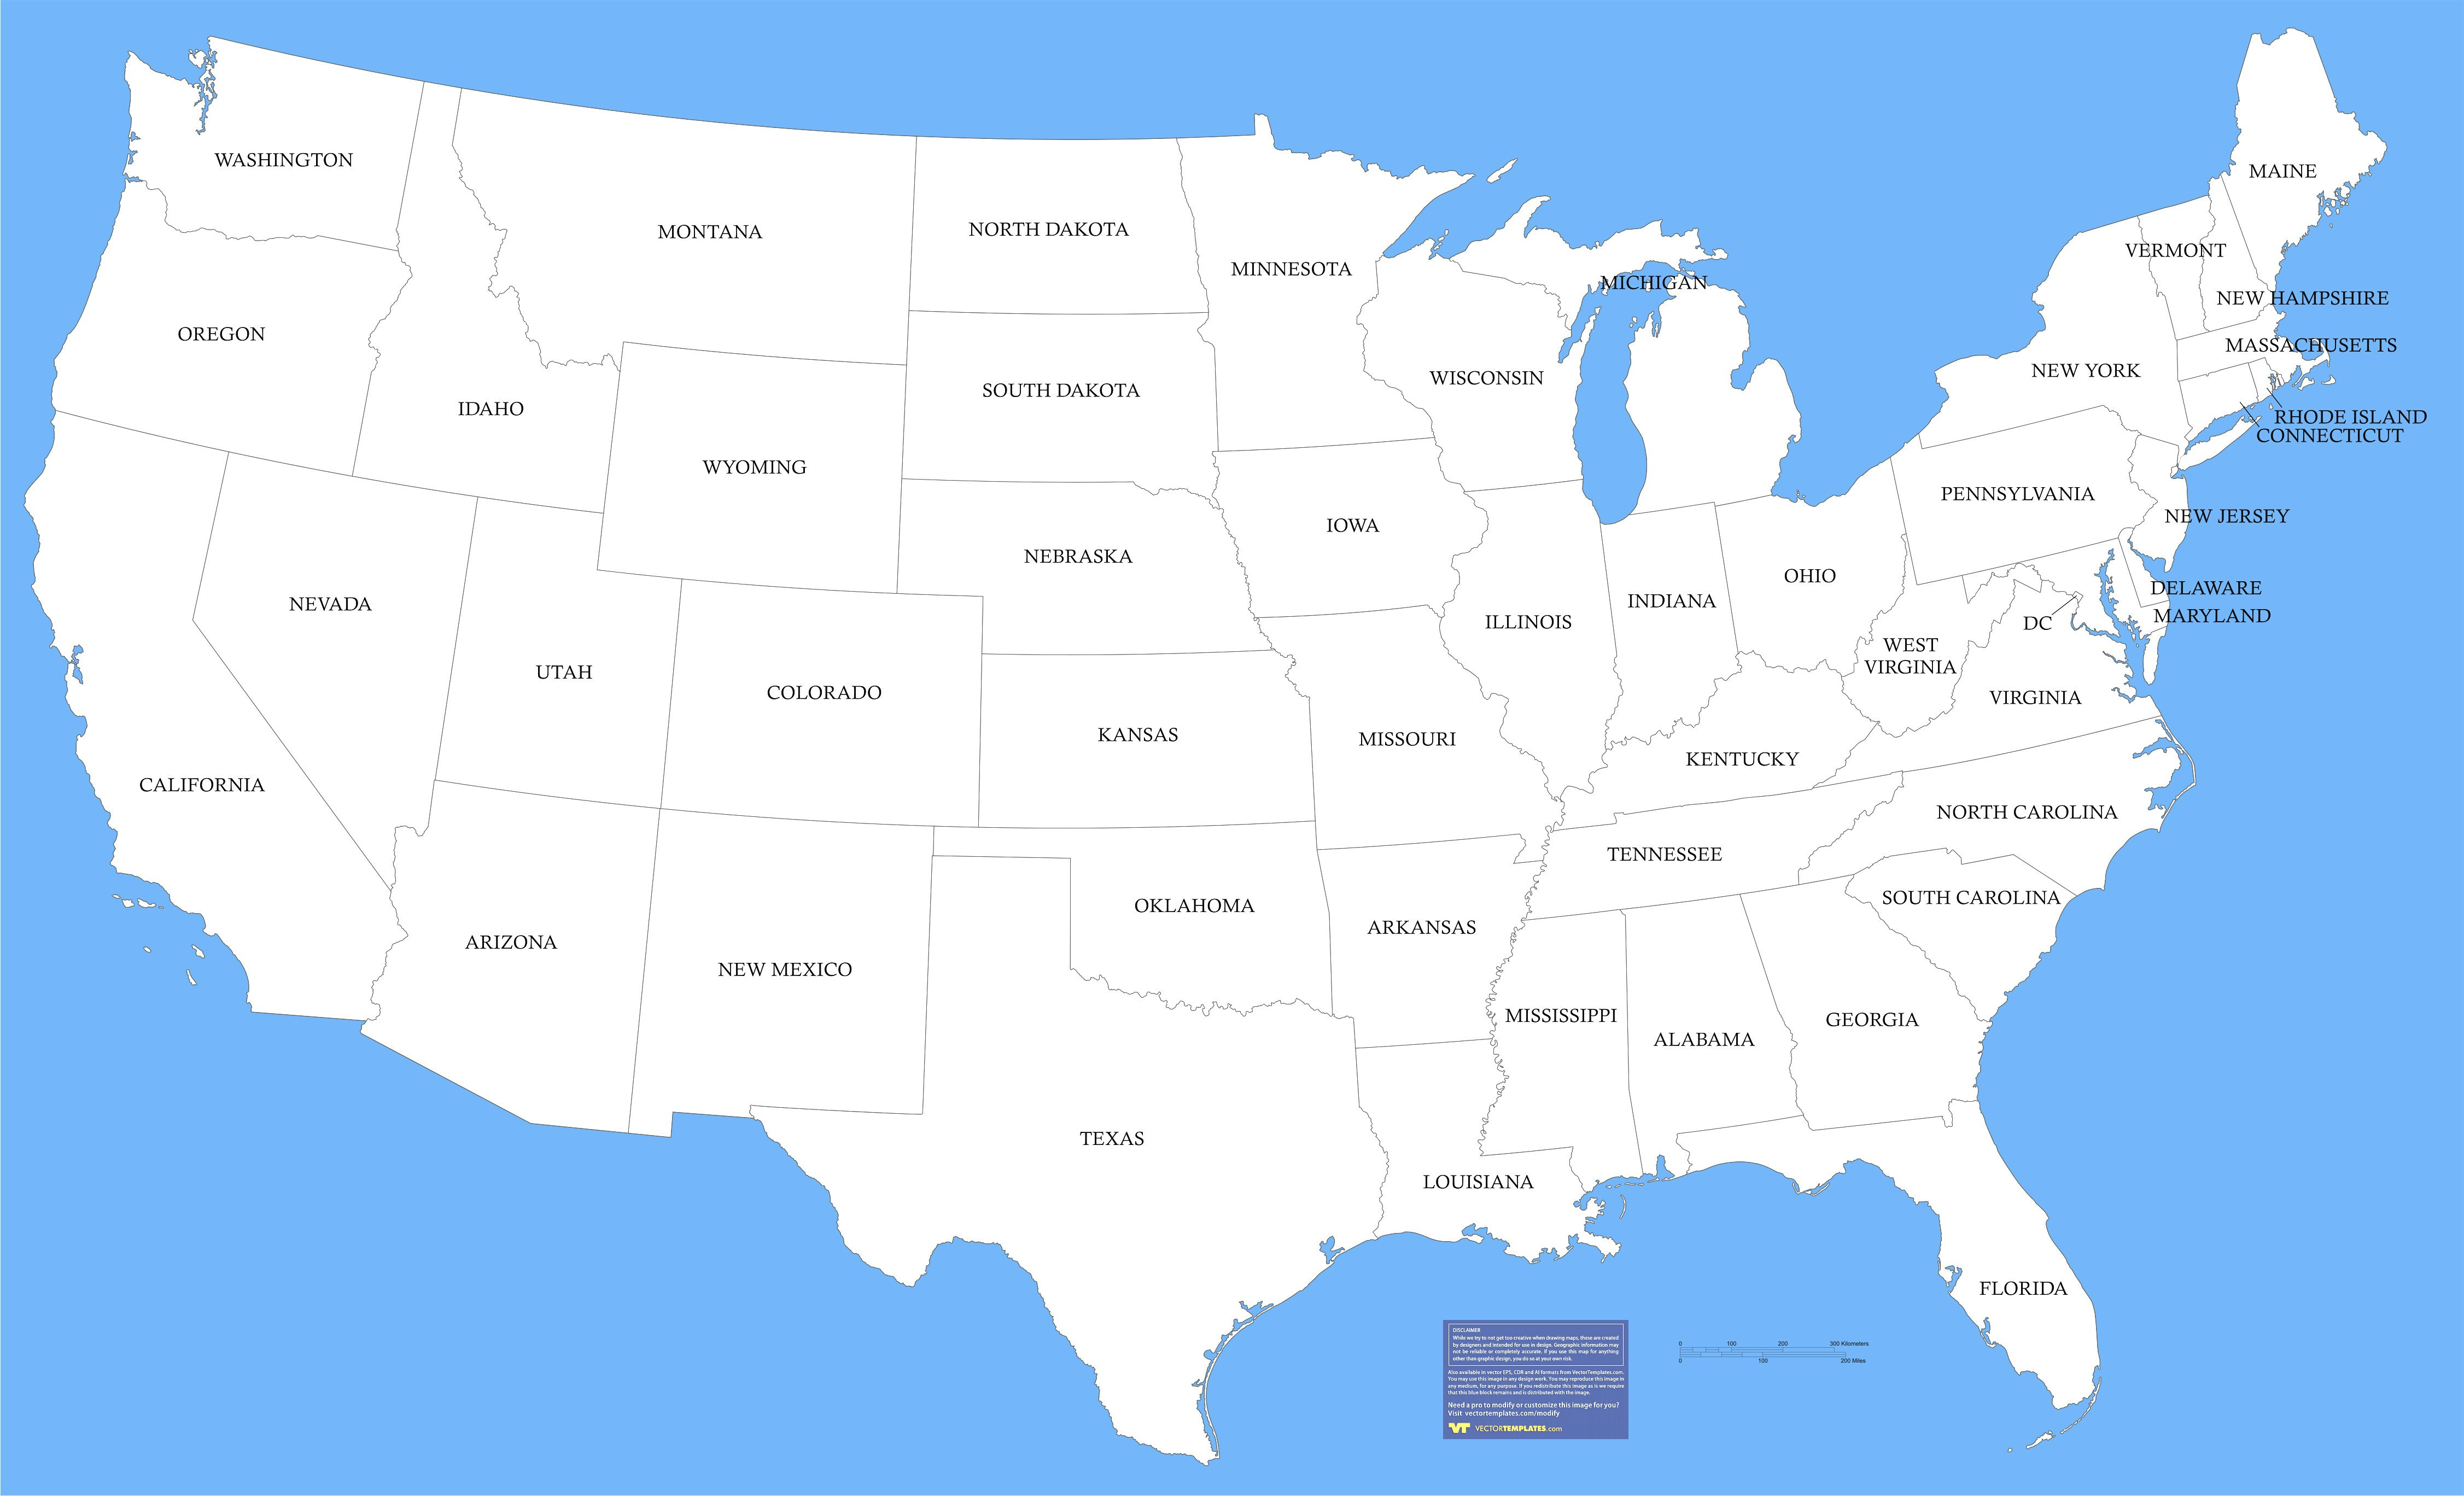 United States Regions Map Printable Best Northeast United States